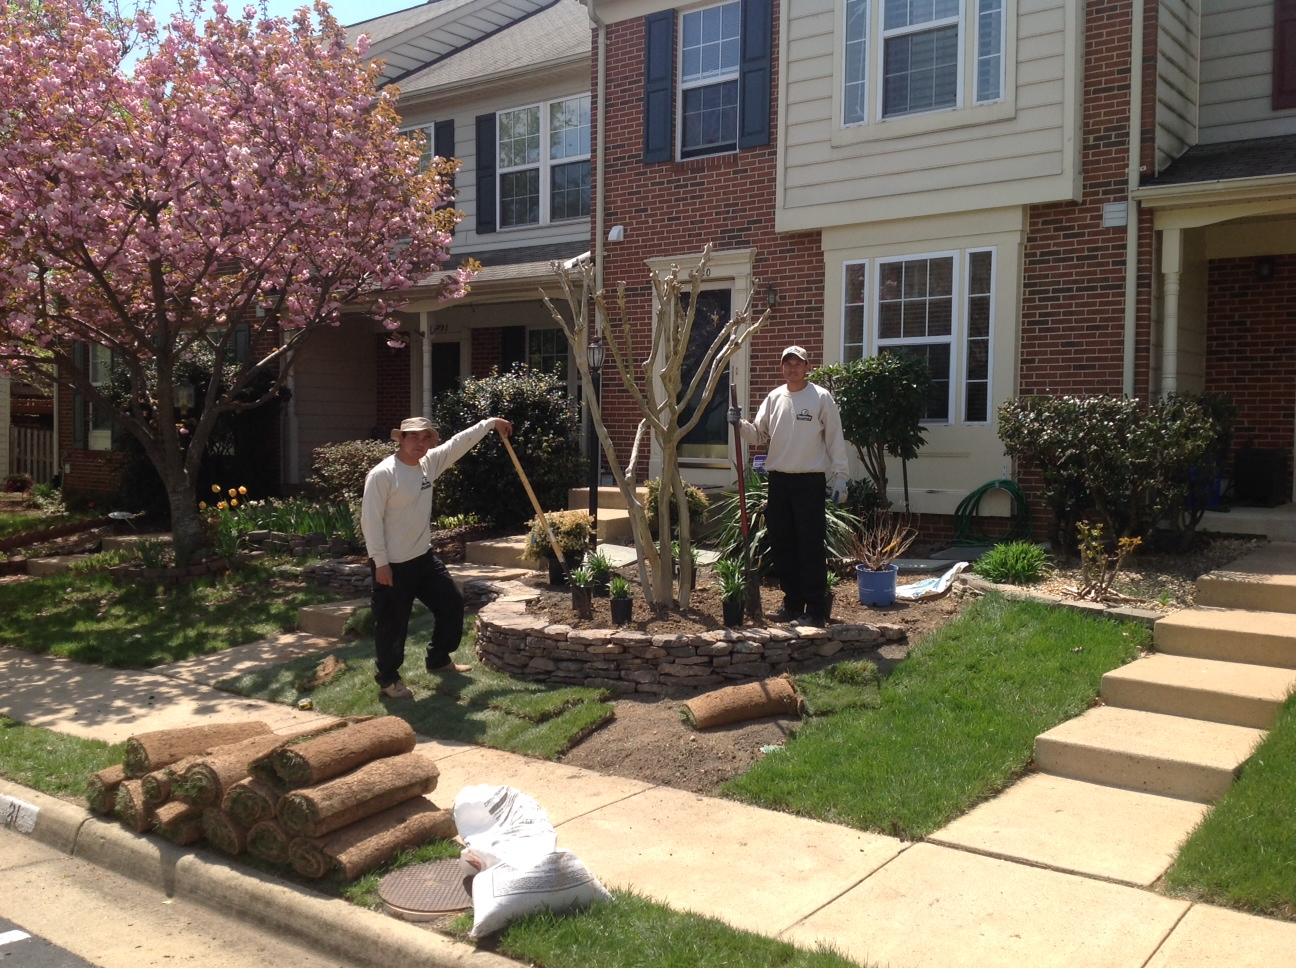 landscaping crew members working in Alexandria, VA